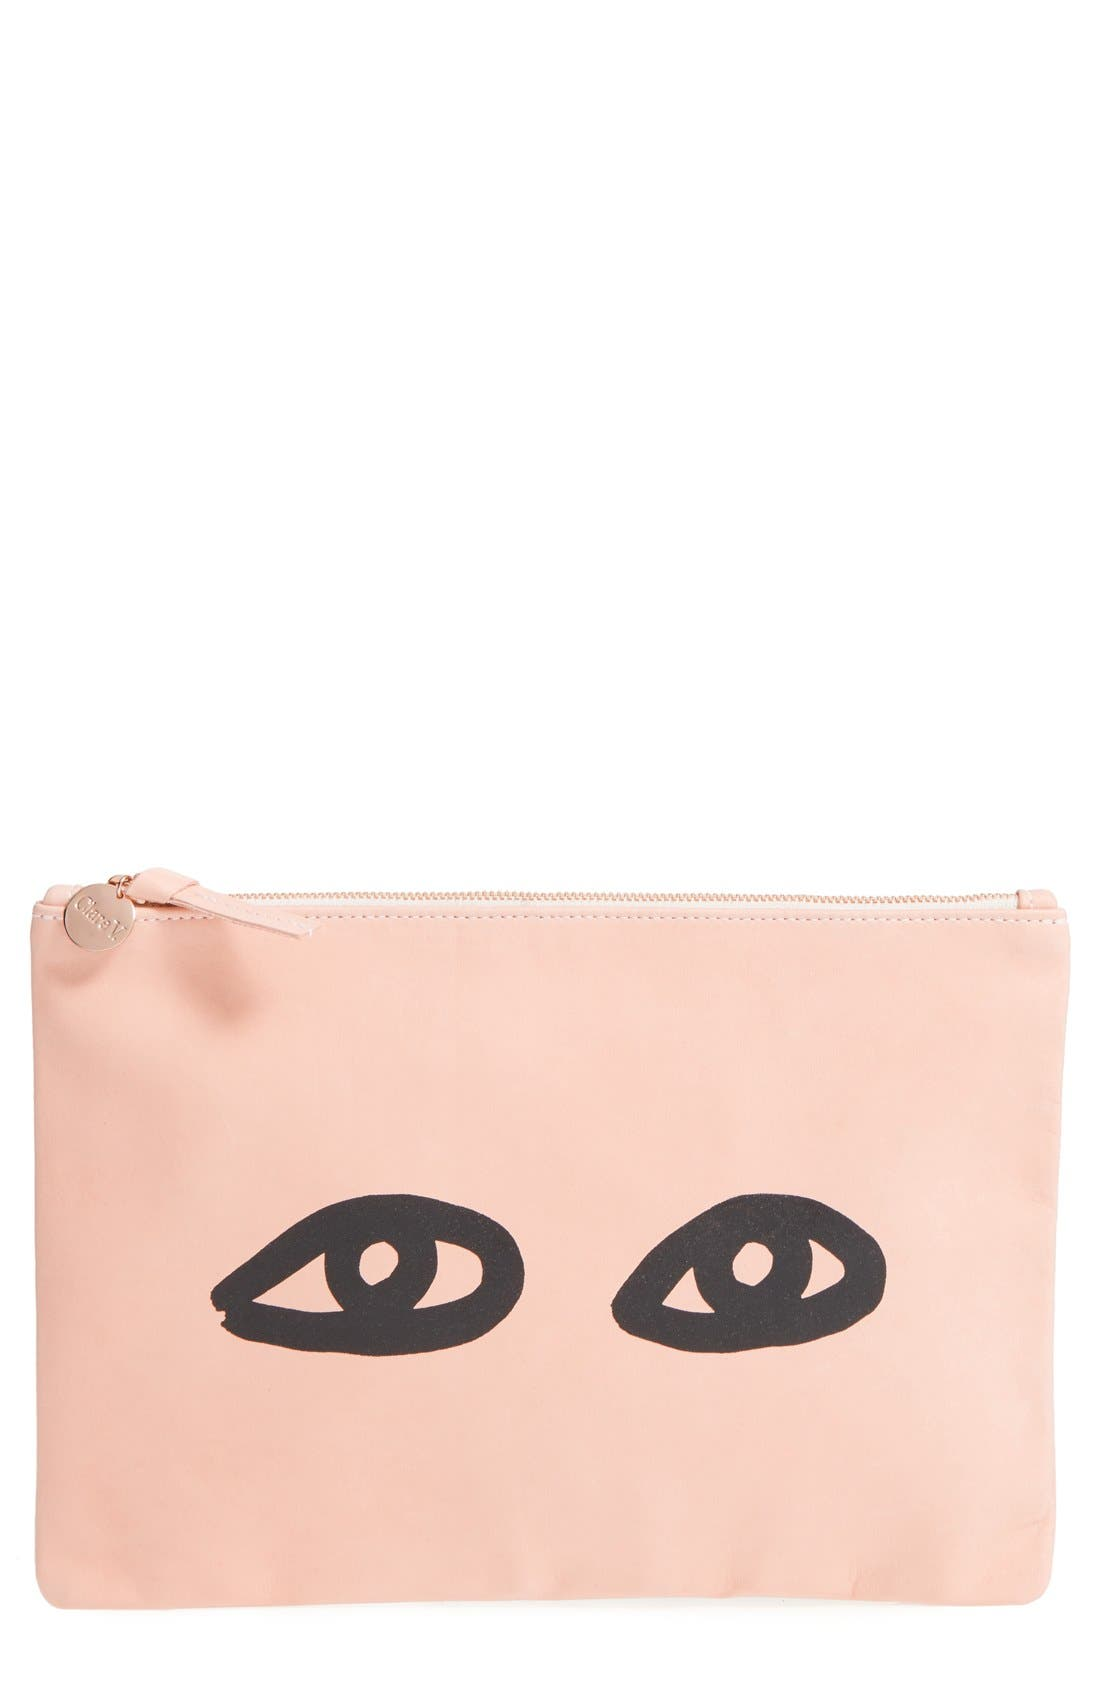 Alternate Image 1 Selected - Clare V. 'Eyes' Printed Nappa Leather Clutch